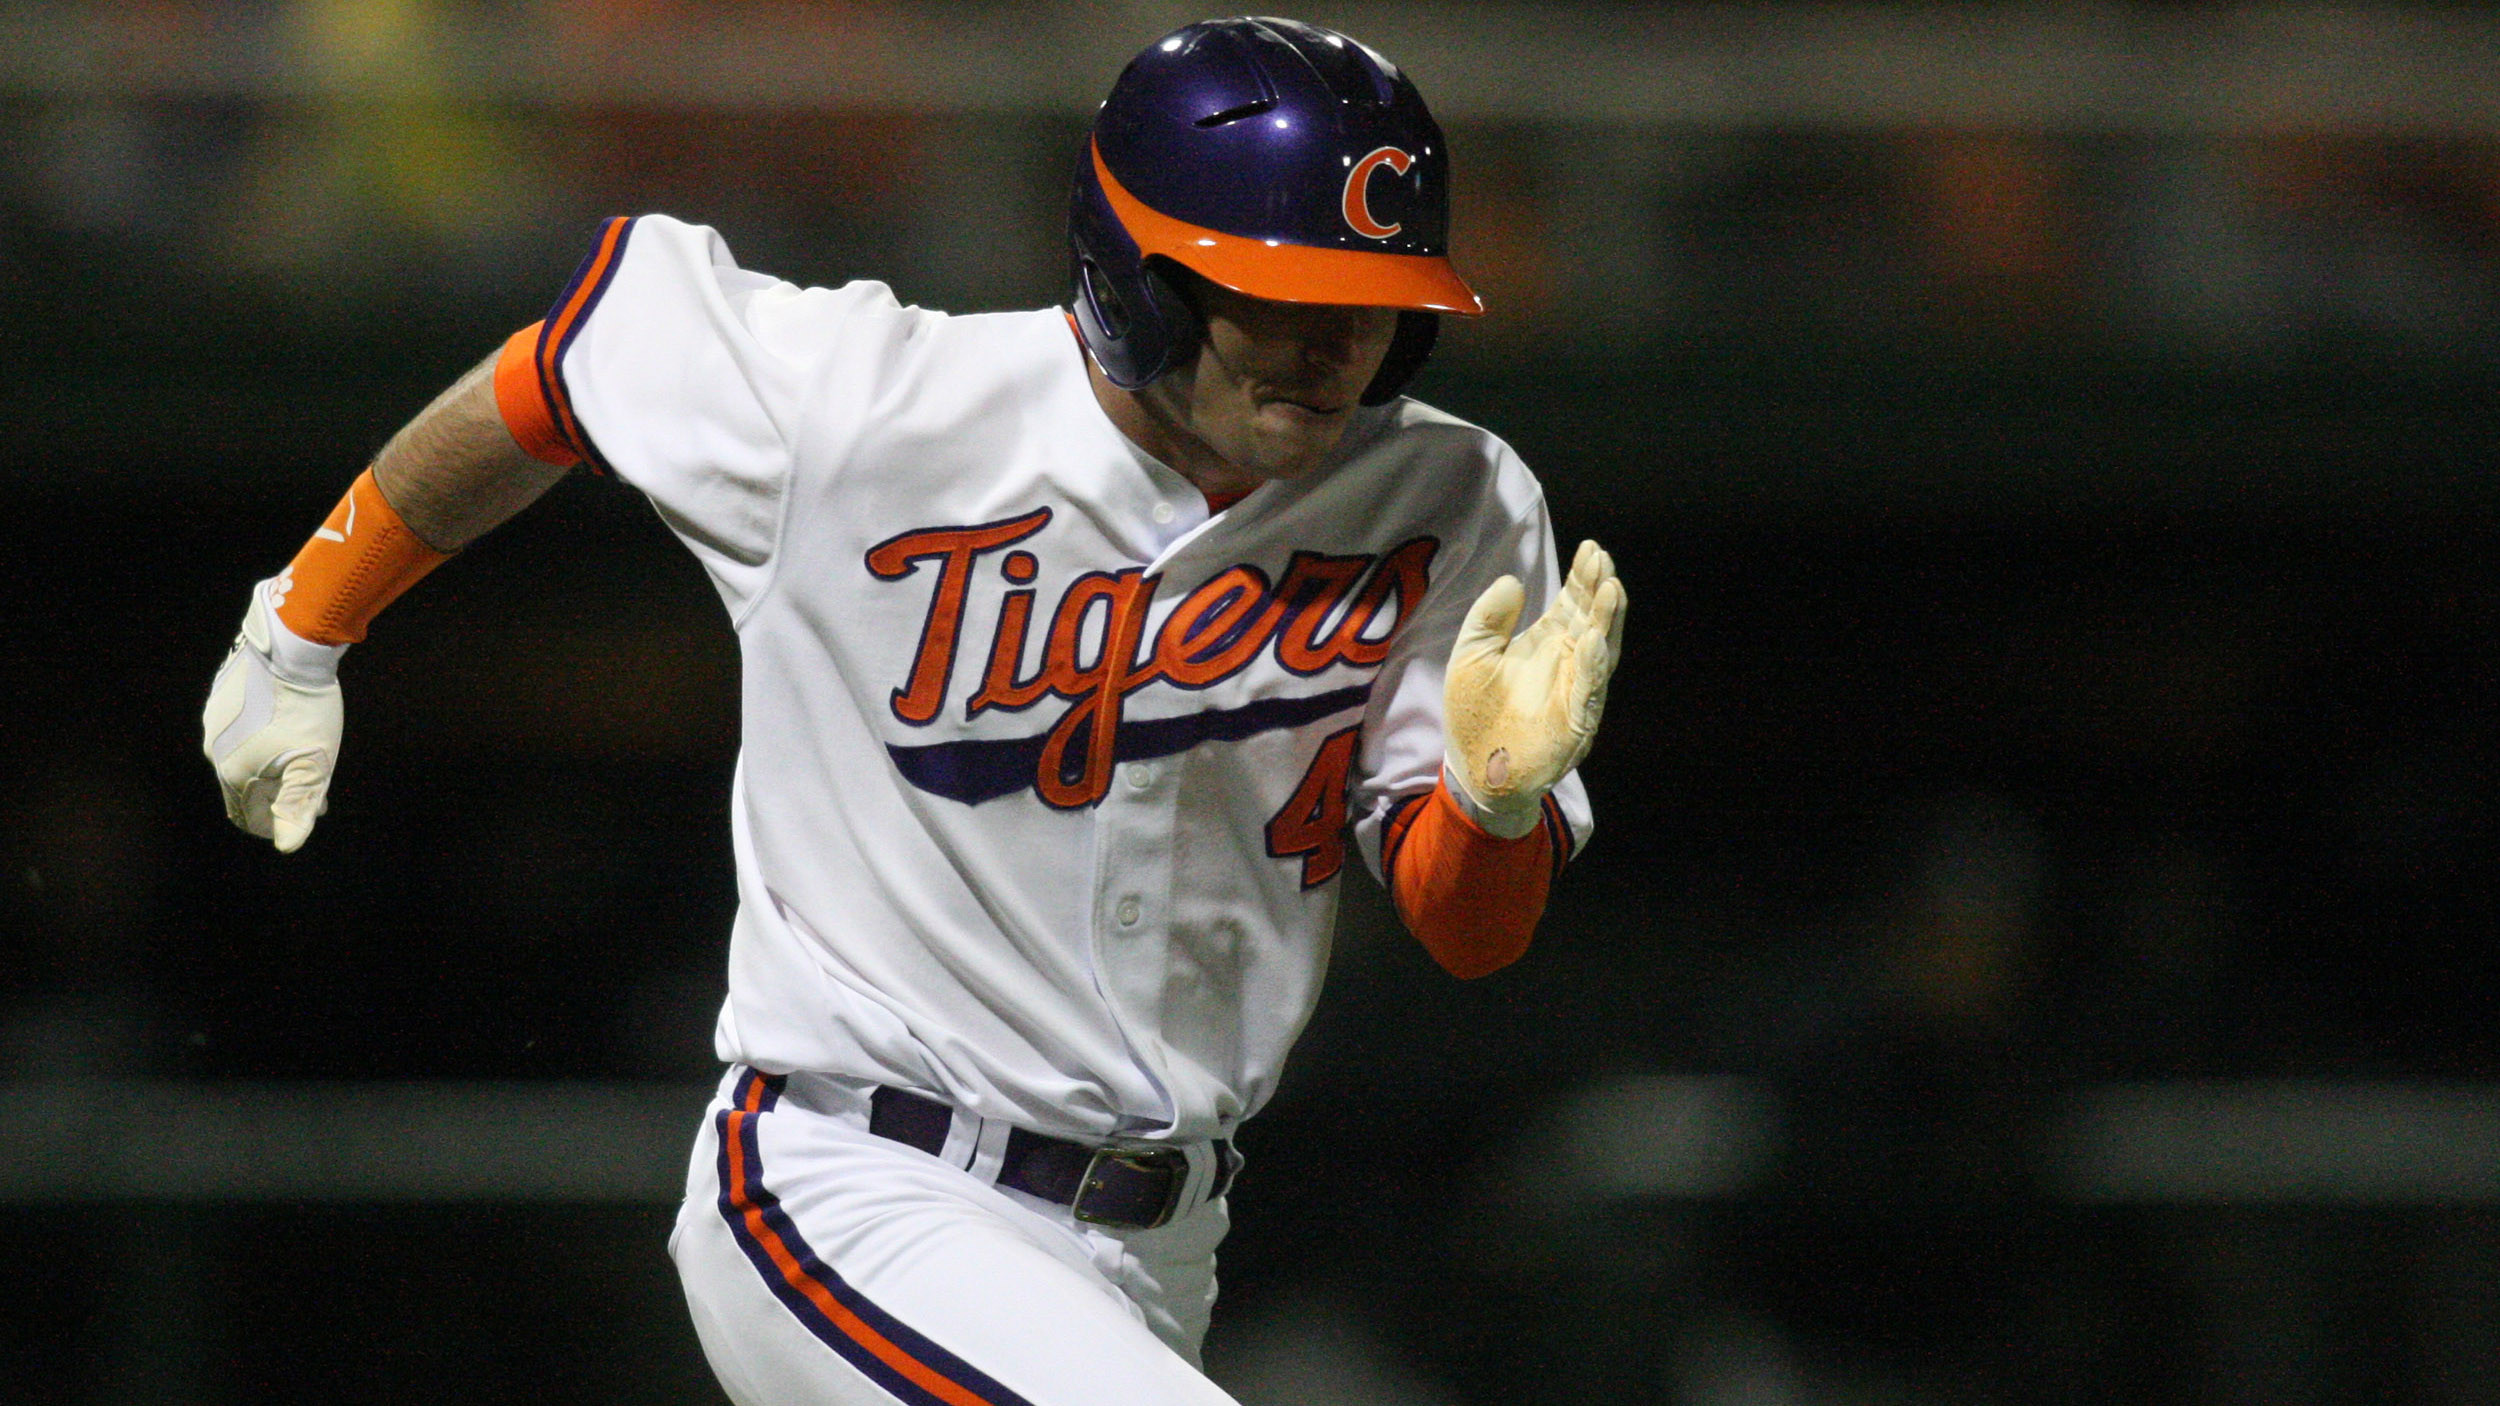 Six-Run Fourth Inning Lifts Clemson to 10-5 Win Over Eagles Tuesday